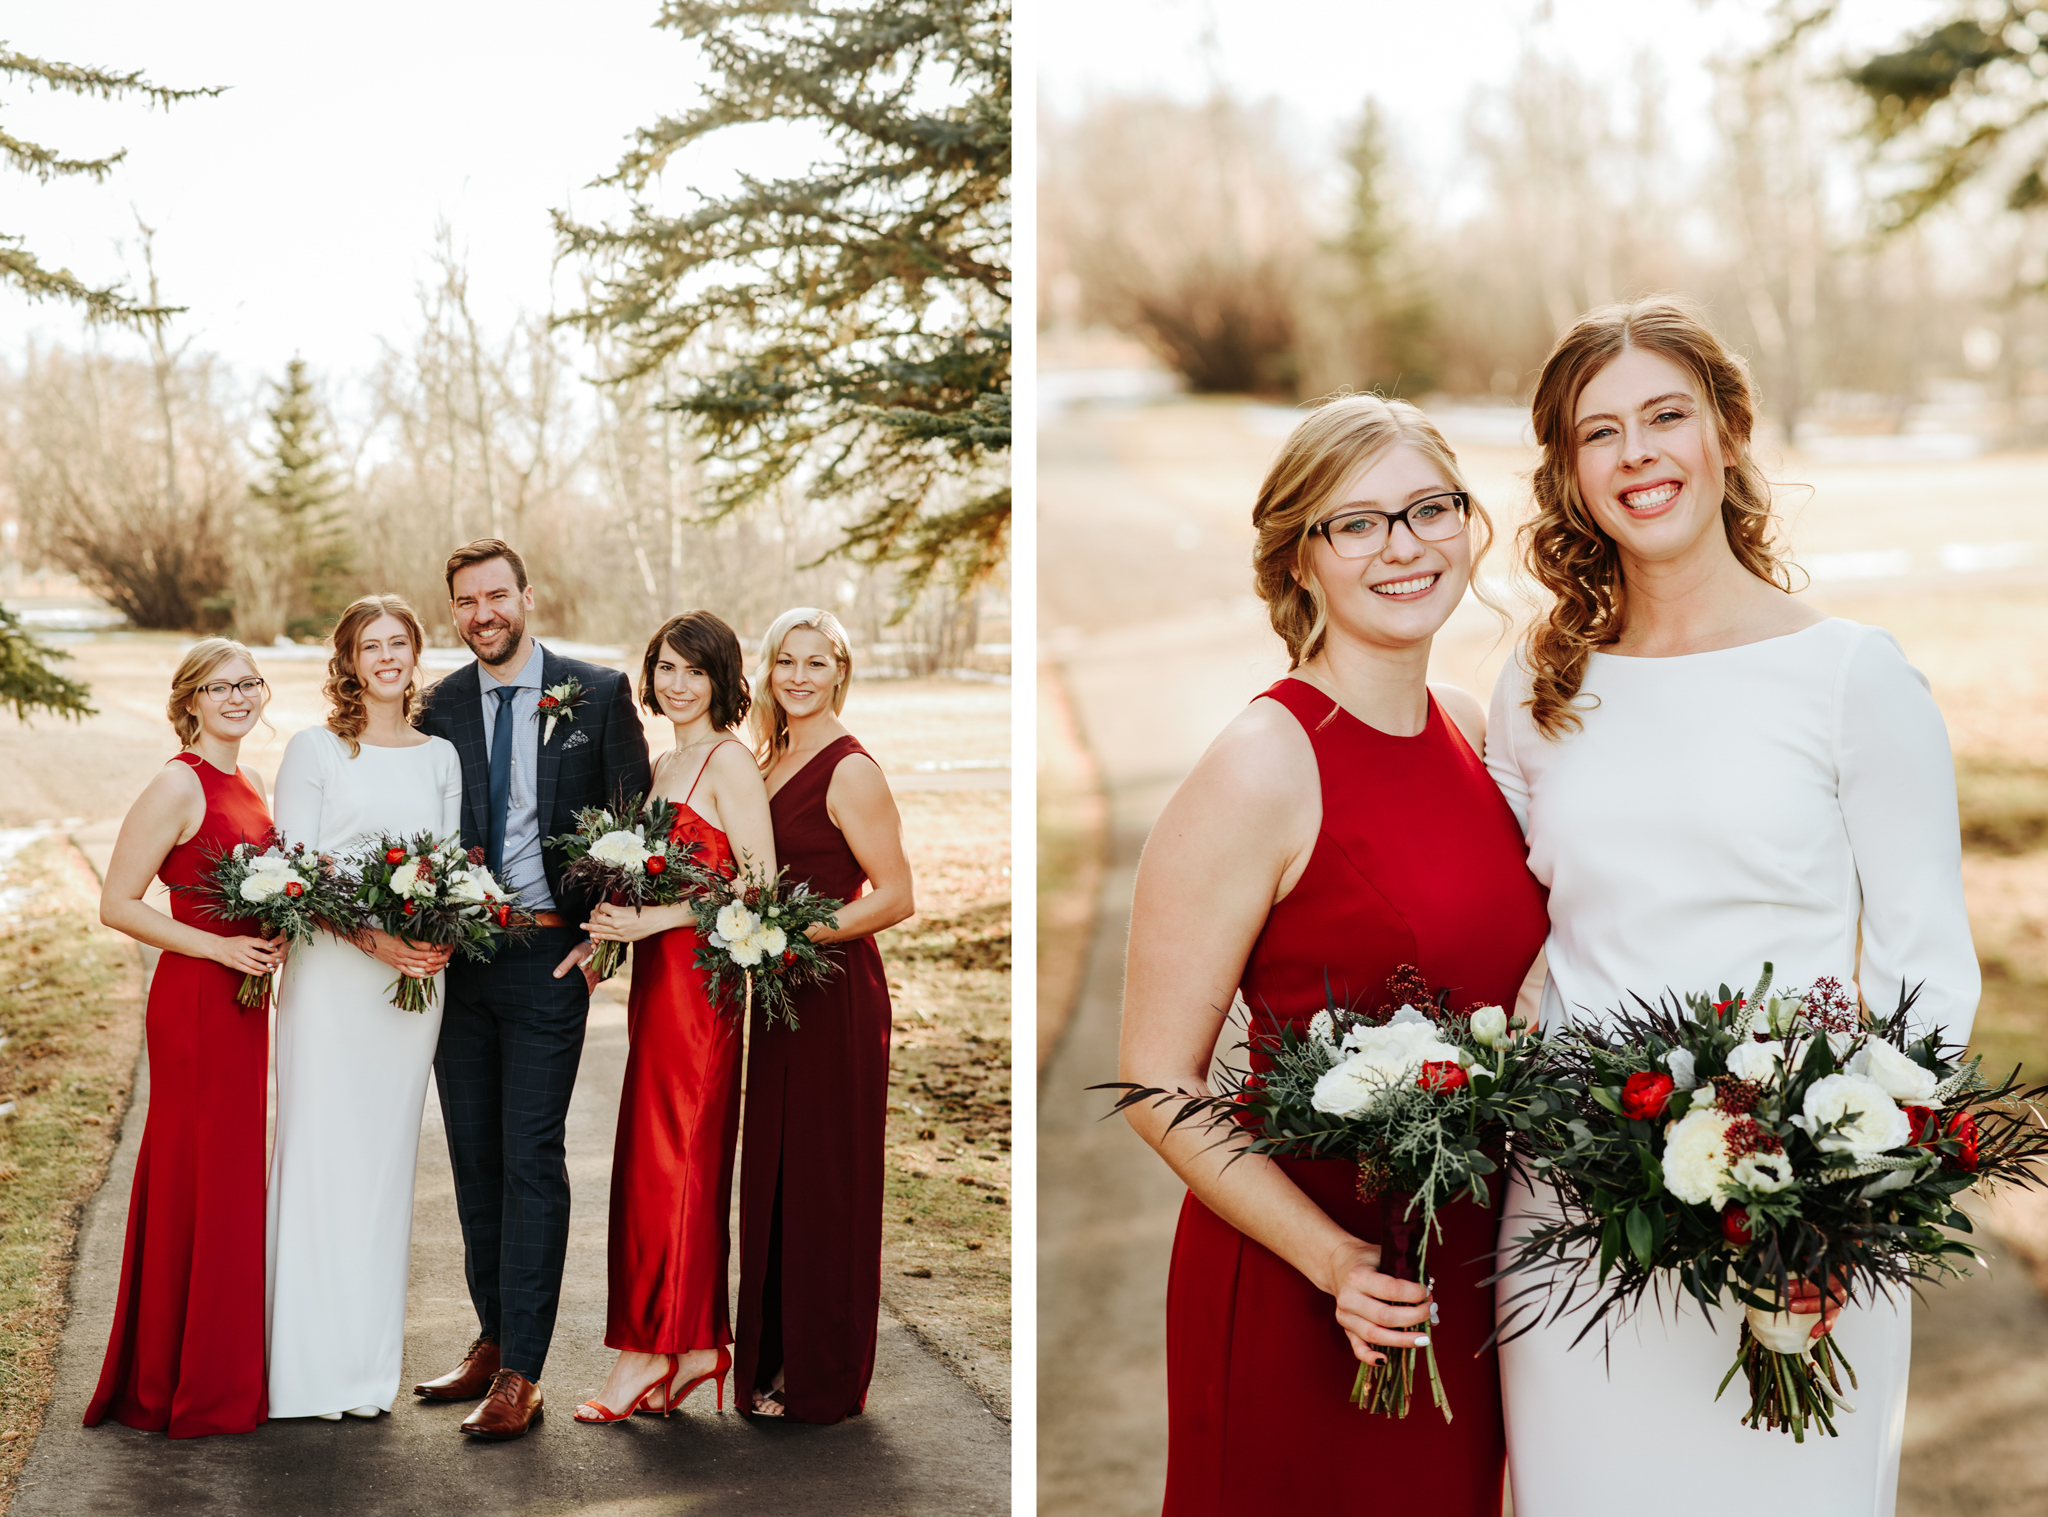 lethbridge-wedding-photographer-love-and-be-loved-photography-kris-amy-paradise-canyon-image-picture-photo-35.jpg